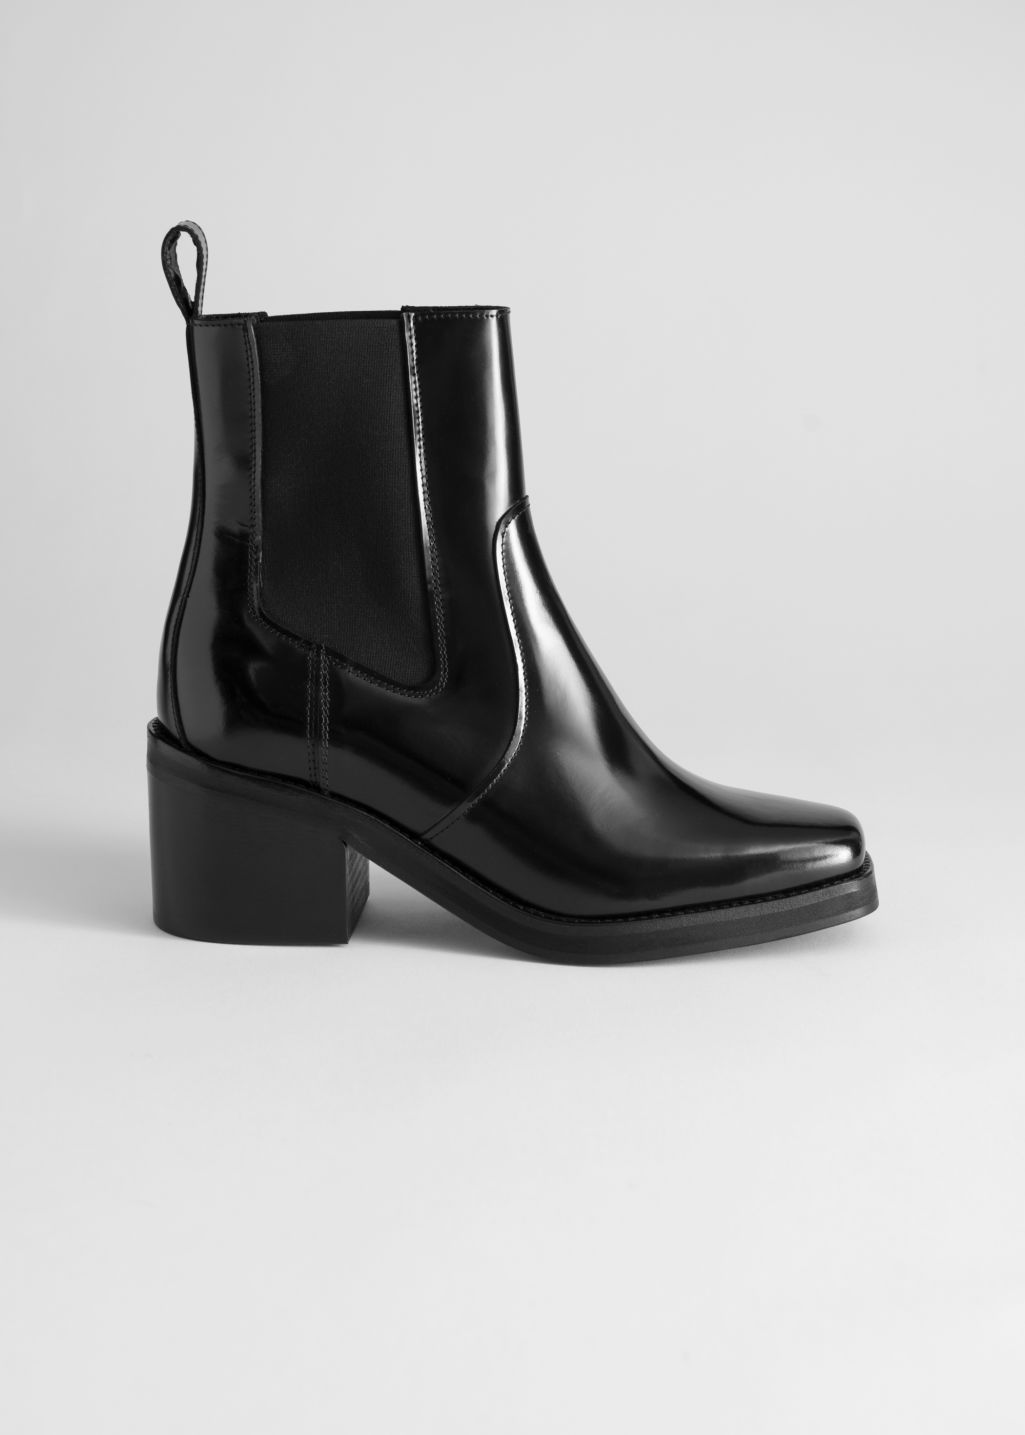 7db49712a92 Square Toe Leather Boots - Black - Ankleboots - & Other Stories ...